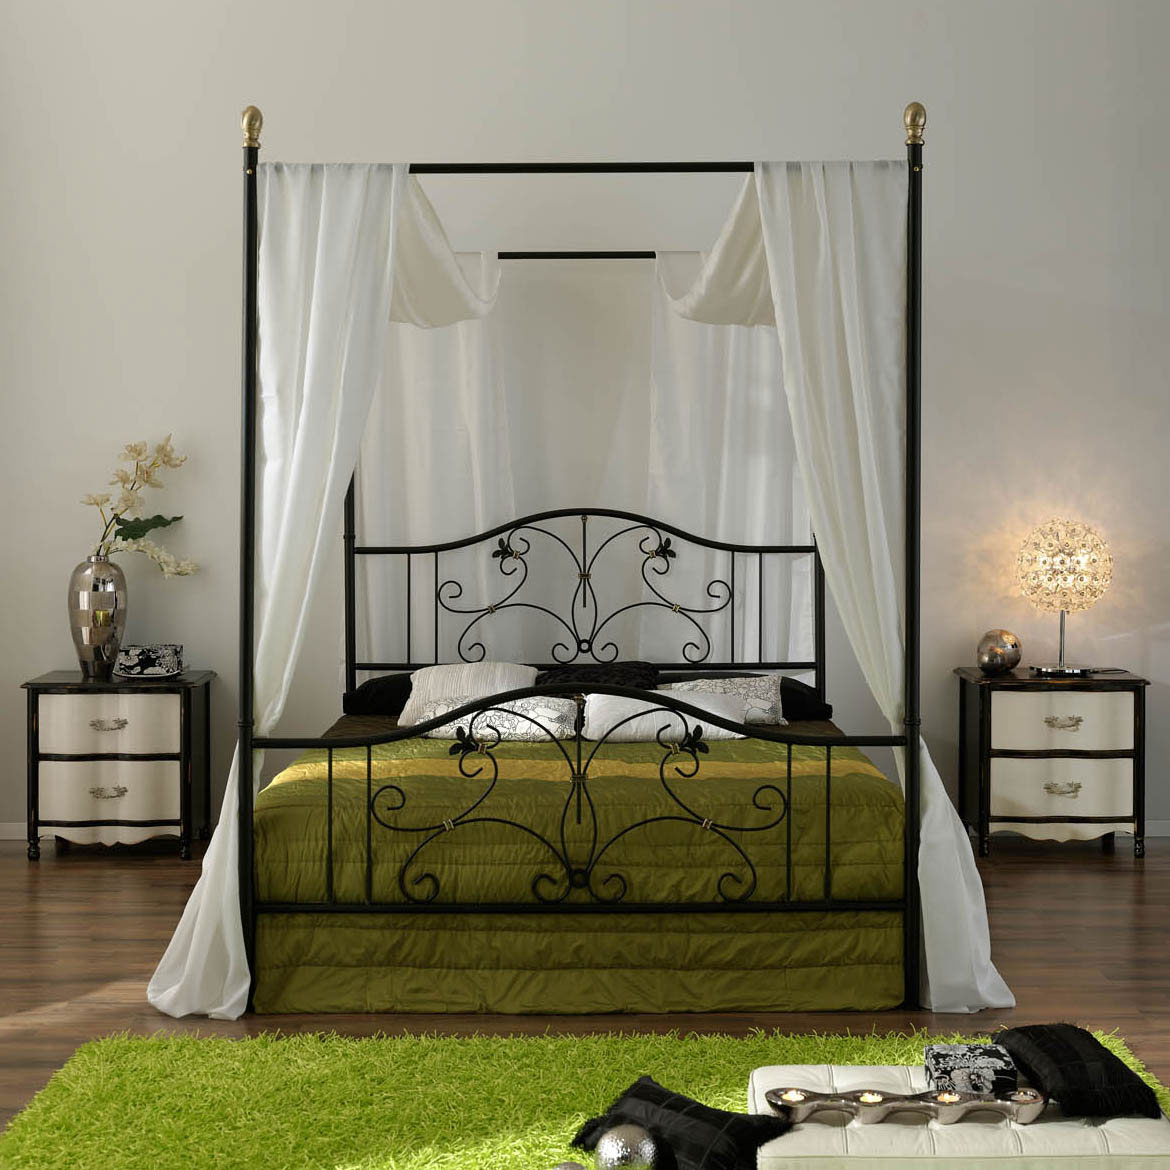 Stunning Design Of The Canopy Bed With Green Bed And Green Rugs Ideas Added With White Curtain Ideas